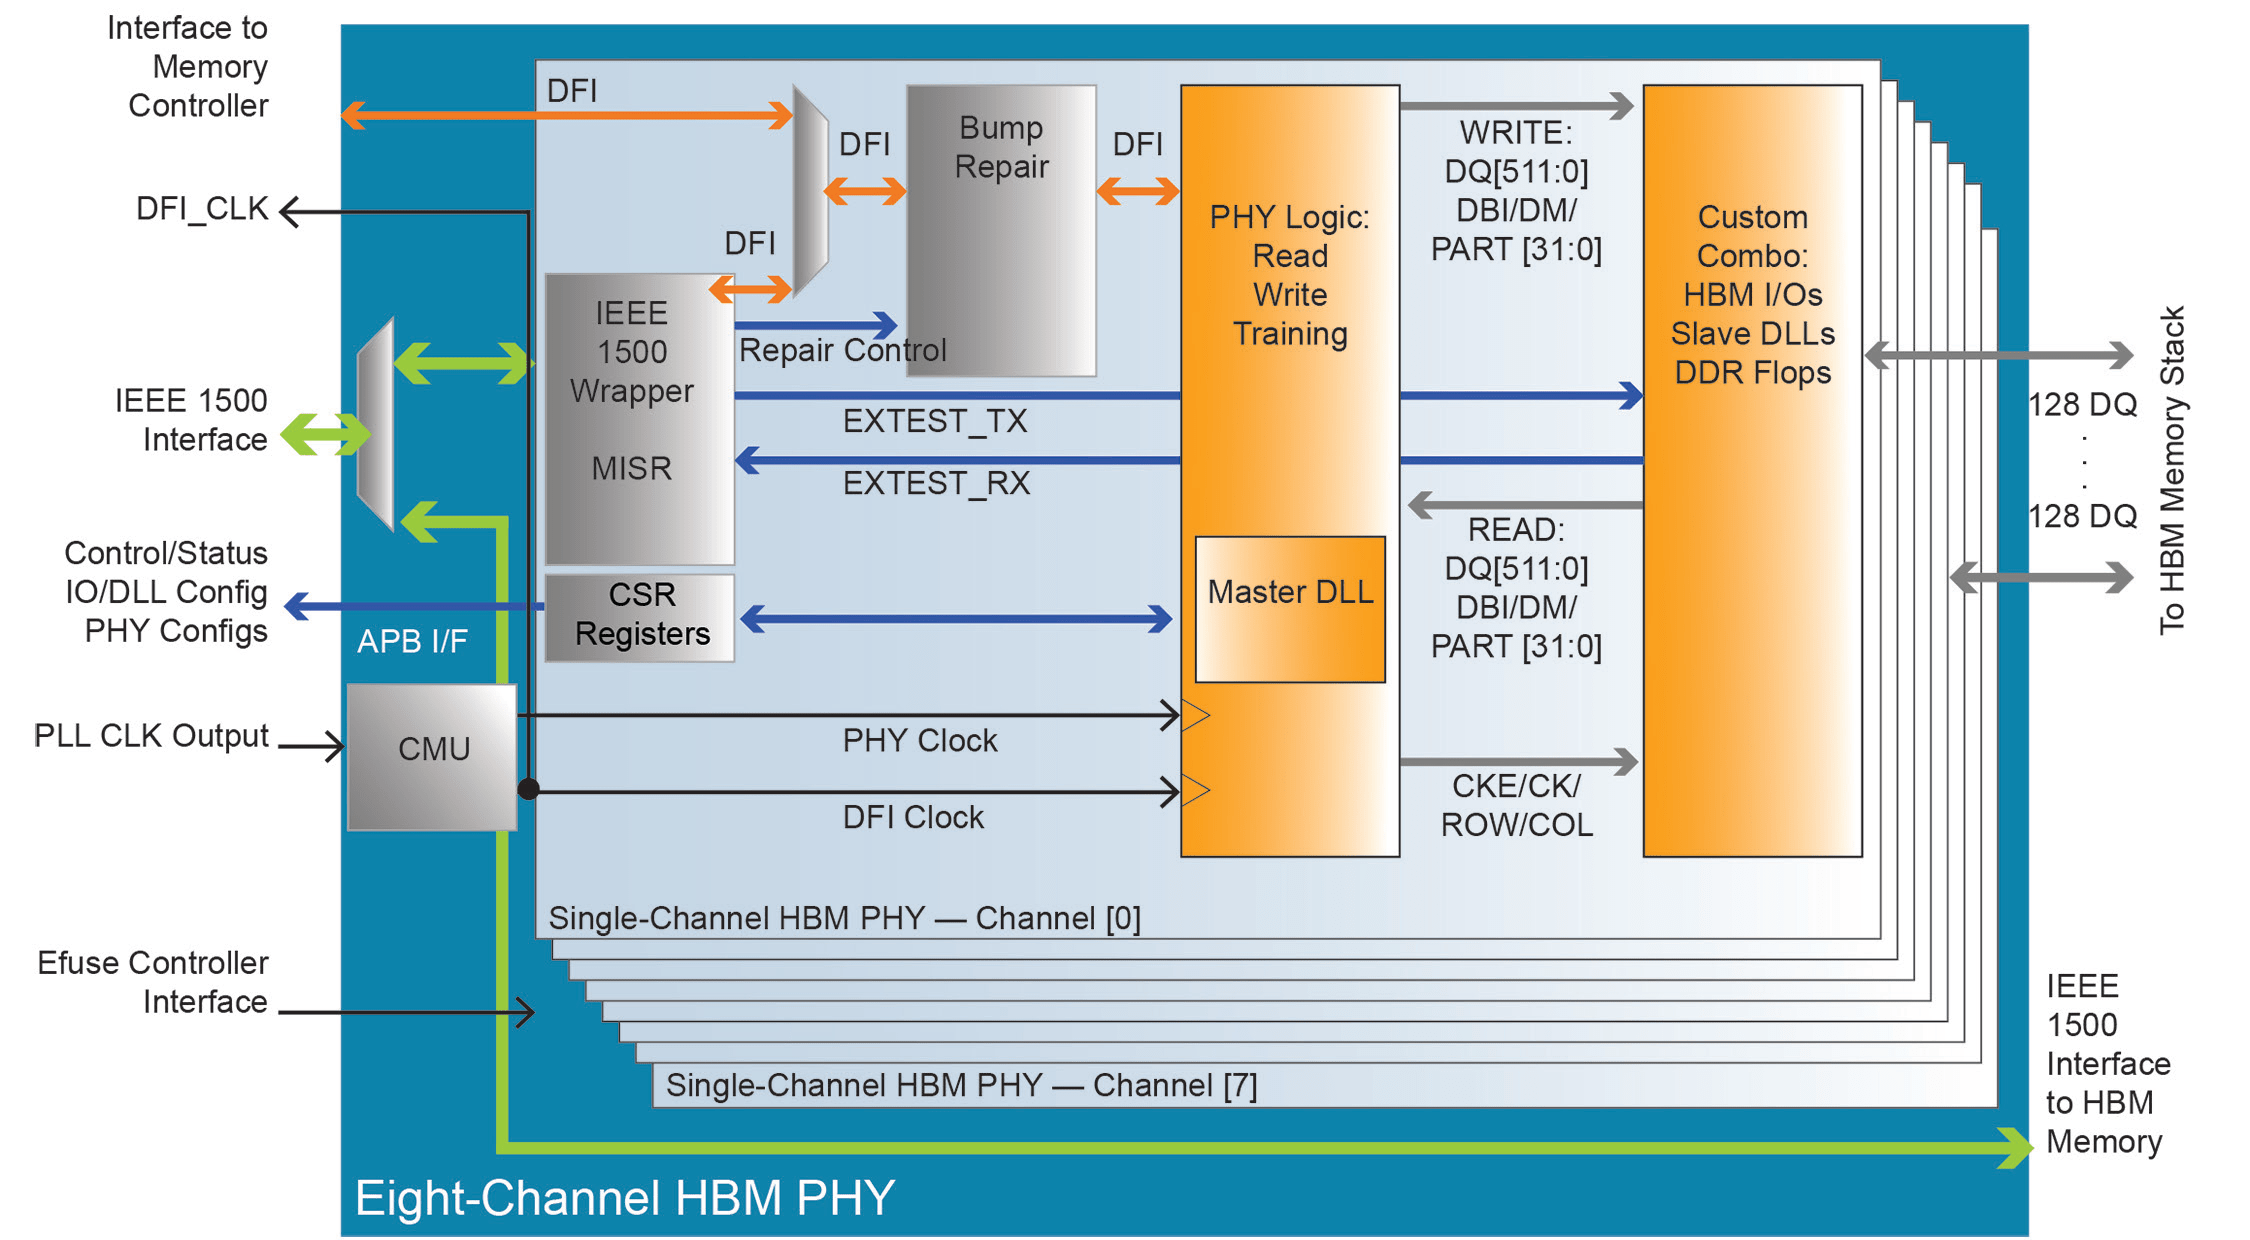 High Bandwidth Memory White Paper Anysilicon Electrical 2011 Provides Circuit Design And Analysis Tools Esilicon Then Invited Northwest Logic Avery Systems Amkor Technology To